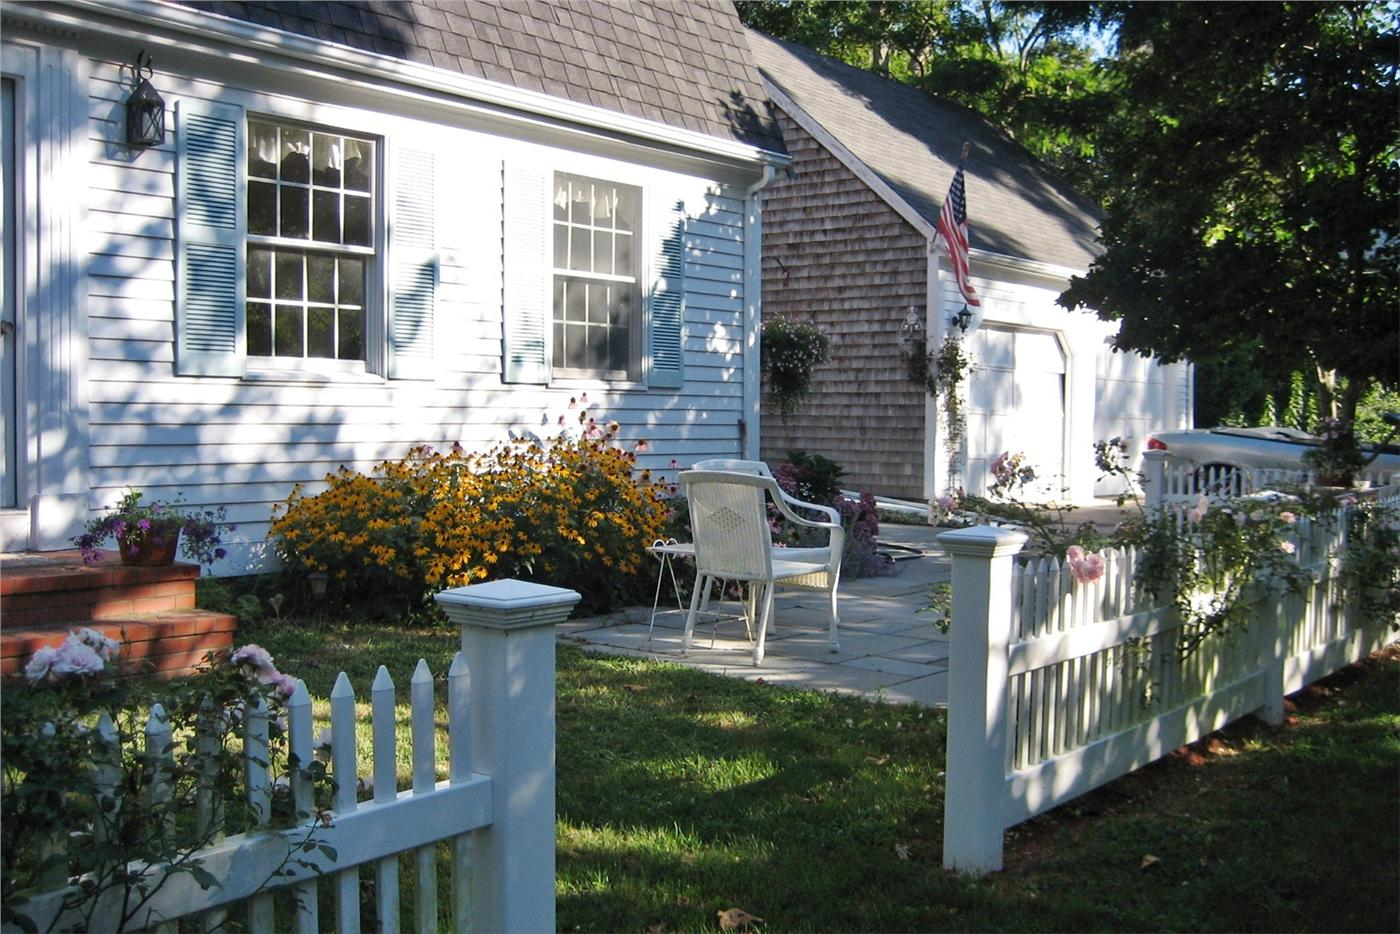 Orleans vacation rental home in cape cod ma 02653 id 18653 for Cabin rentals in cape cod ma